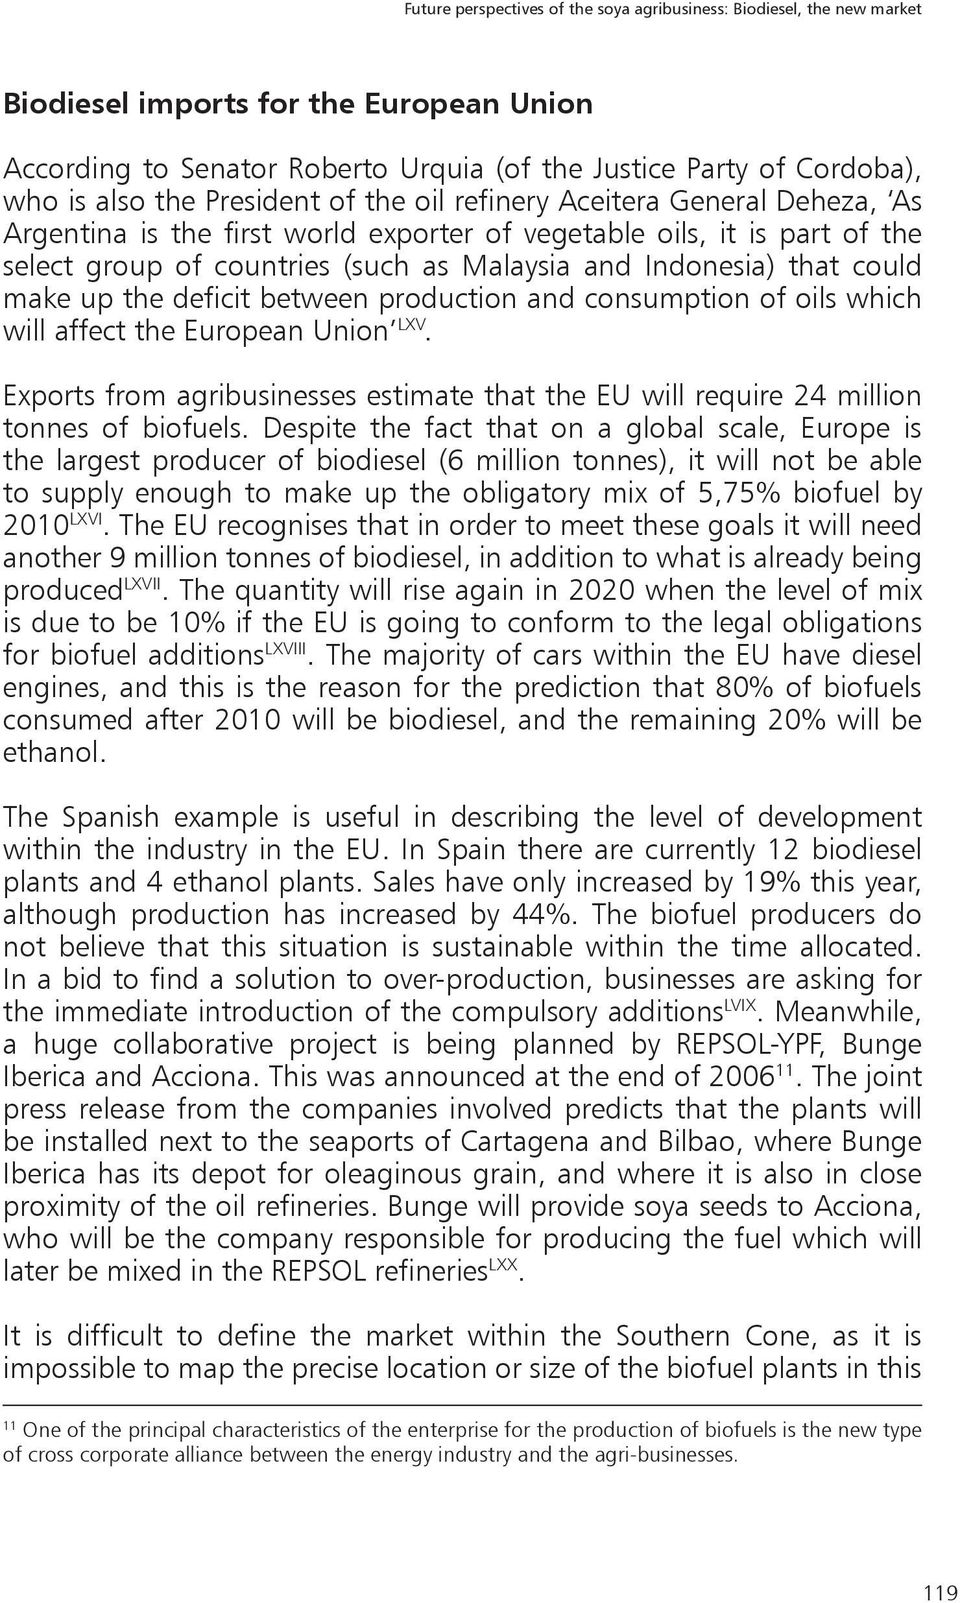 could make up the deficit between production and consumption of oils which will affect the European Union LXV.